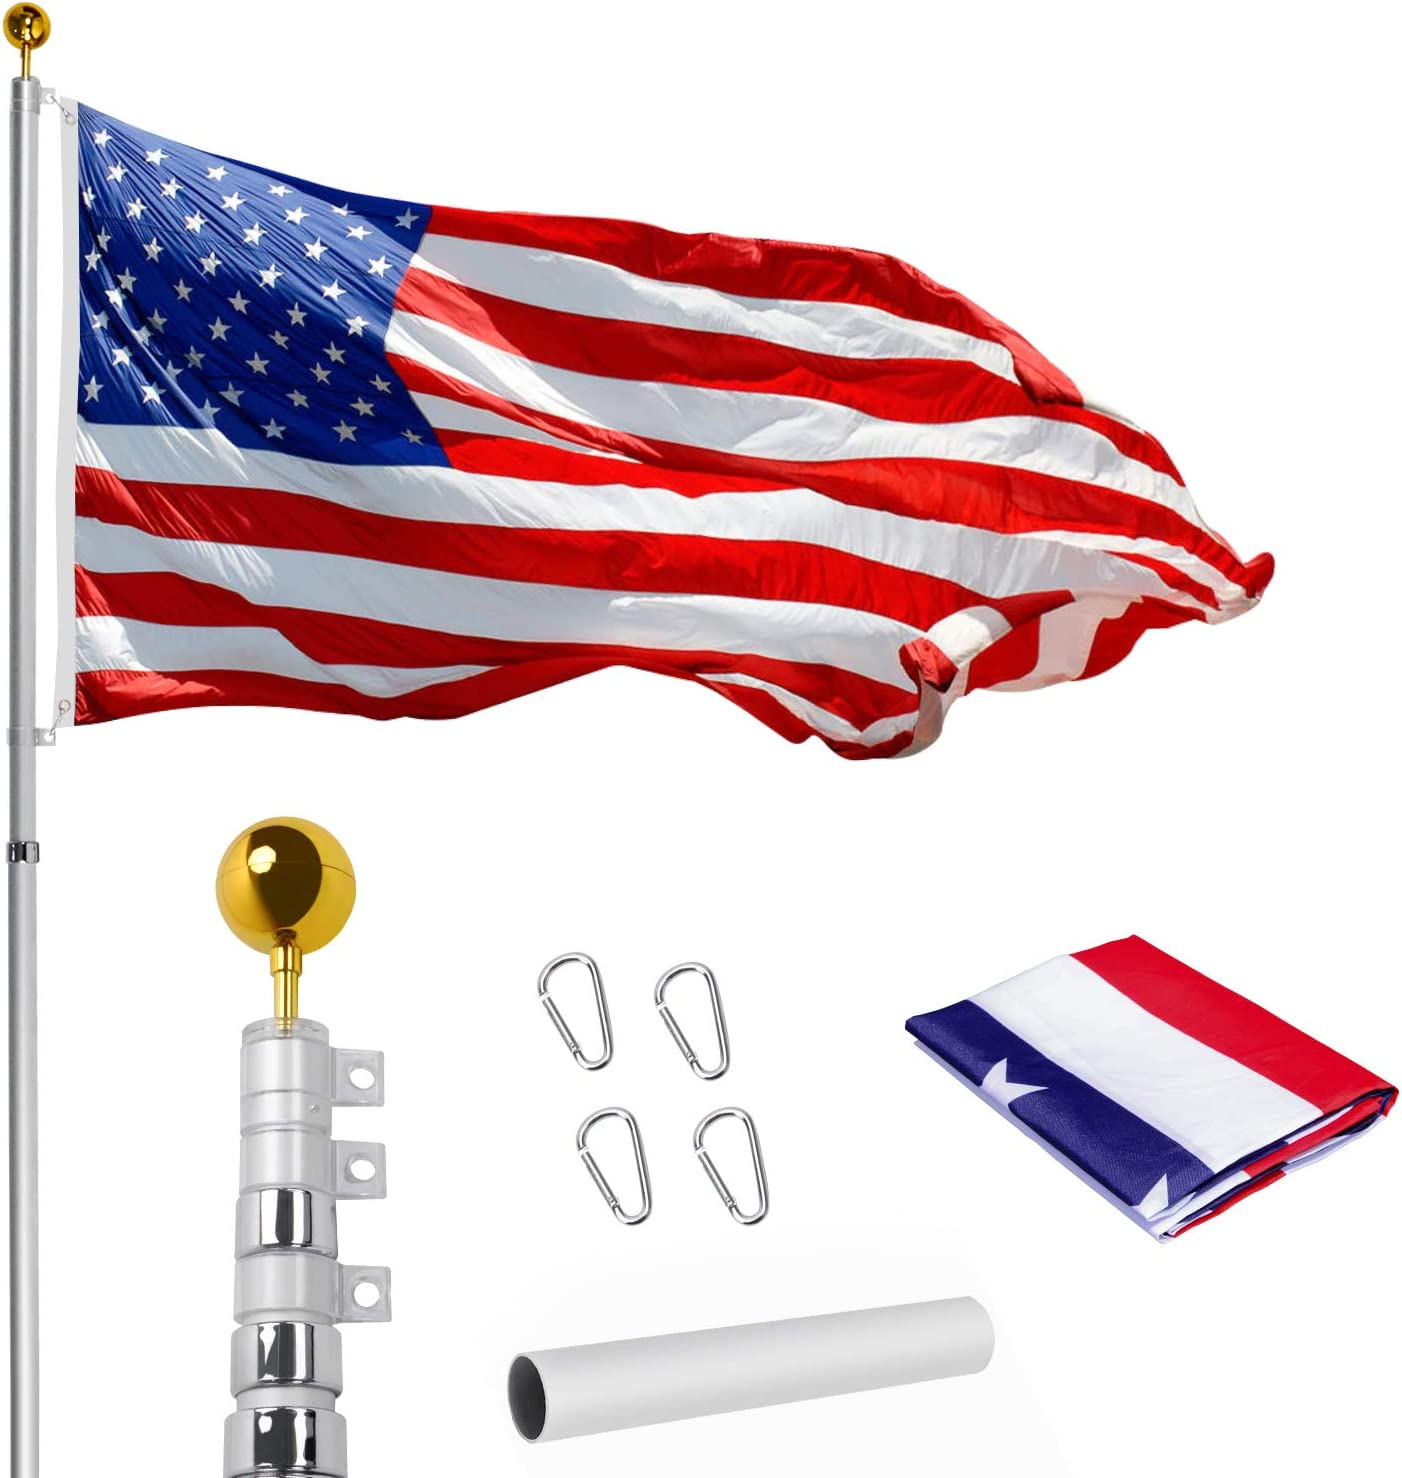 Amazon Com Wevalor 20ft Telescoping Flag Pole Kit Heavy Duty 16 Gauge Aluminum Outdoor In Ground Flag Poles With 3x5 Usa Flag For Residential Or Commercial Silver Garden Outdoor